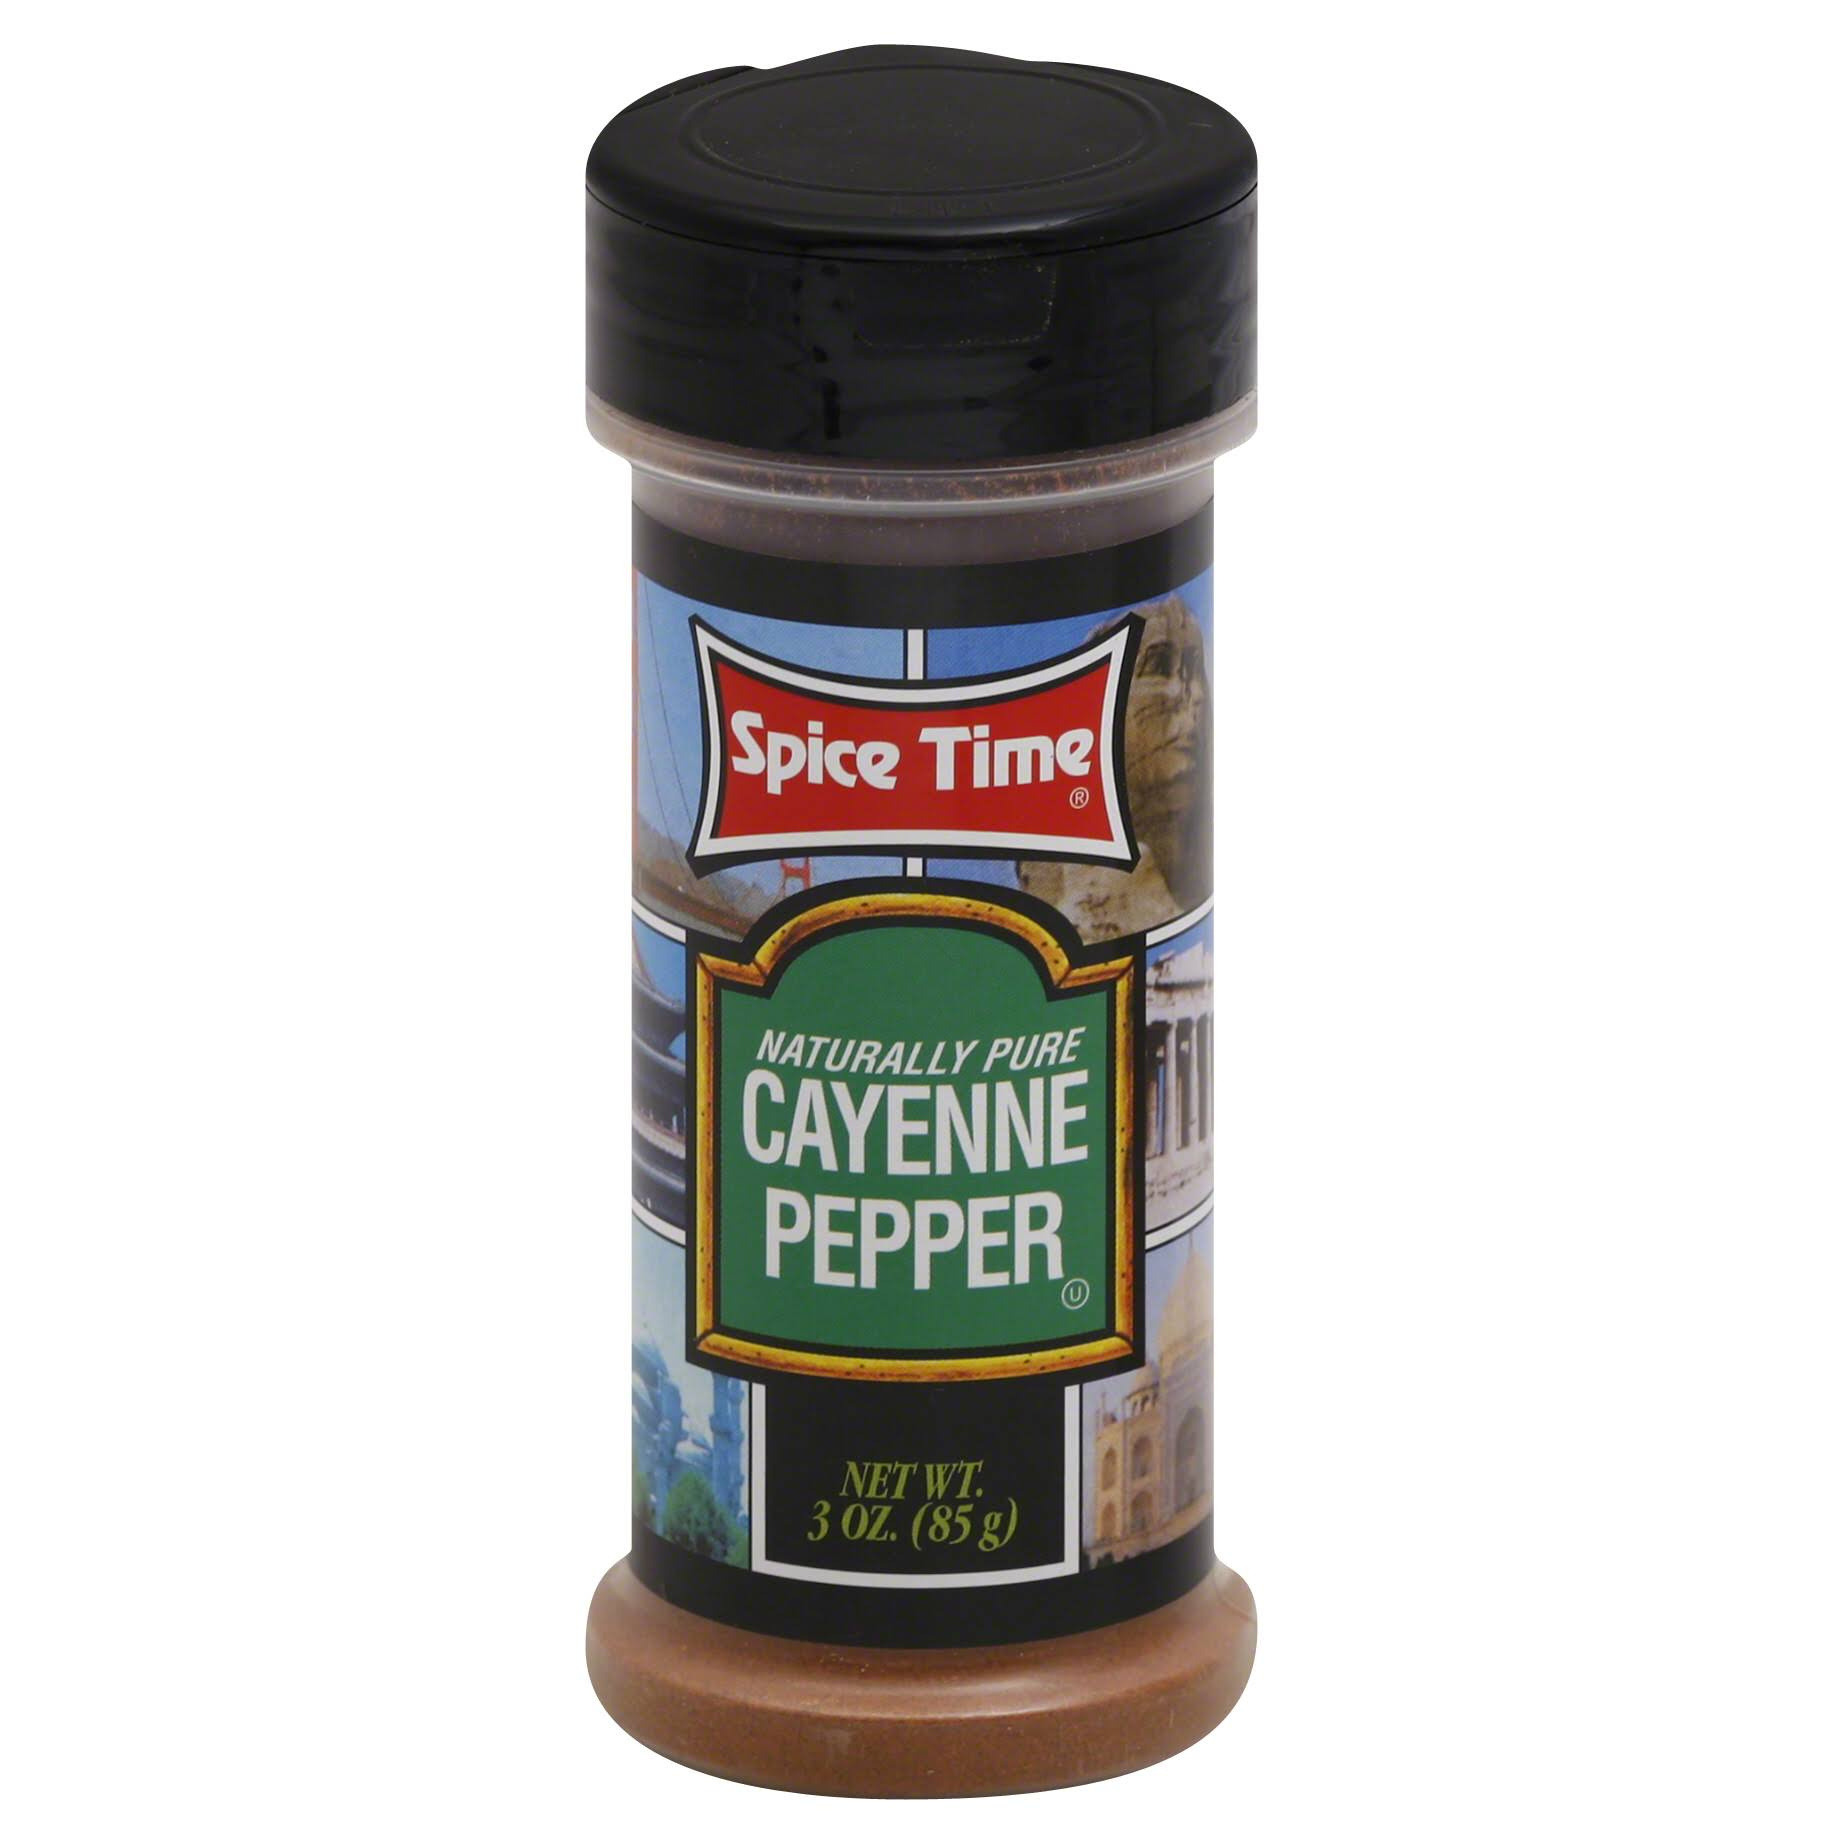 Spice Time Cayenne Pepper - 3oz